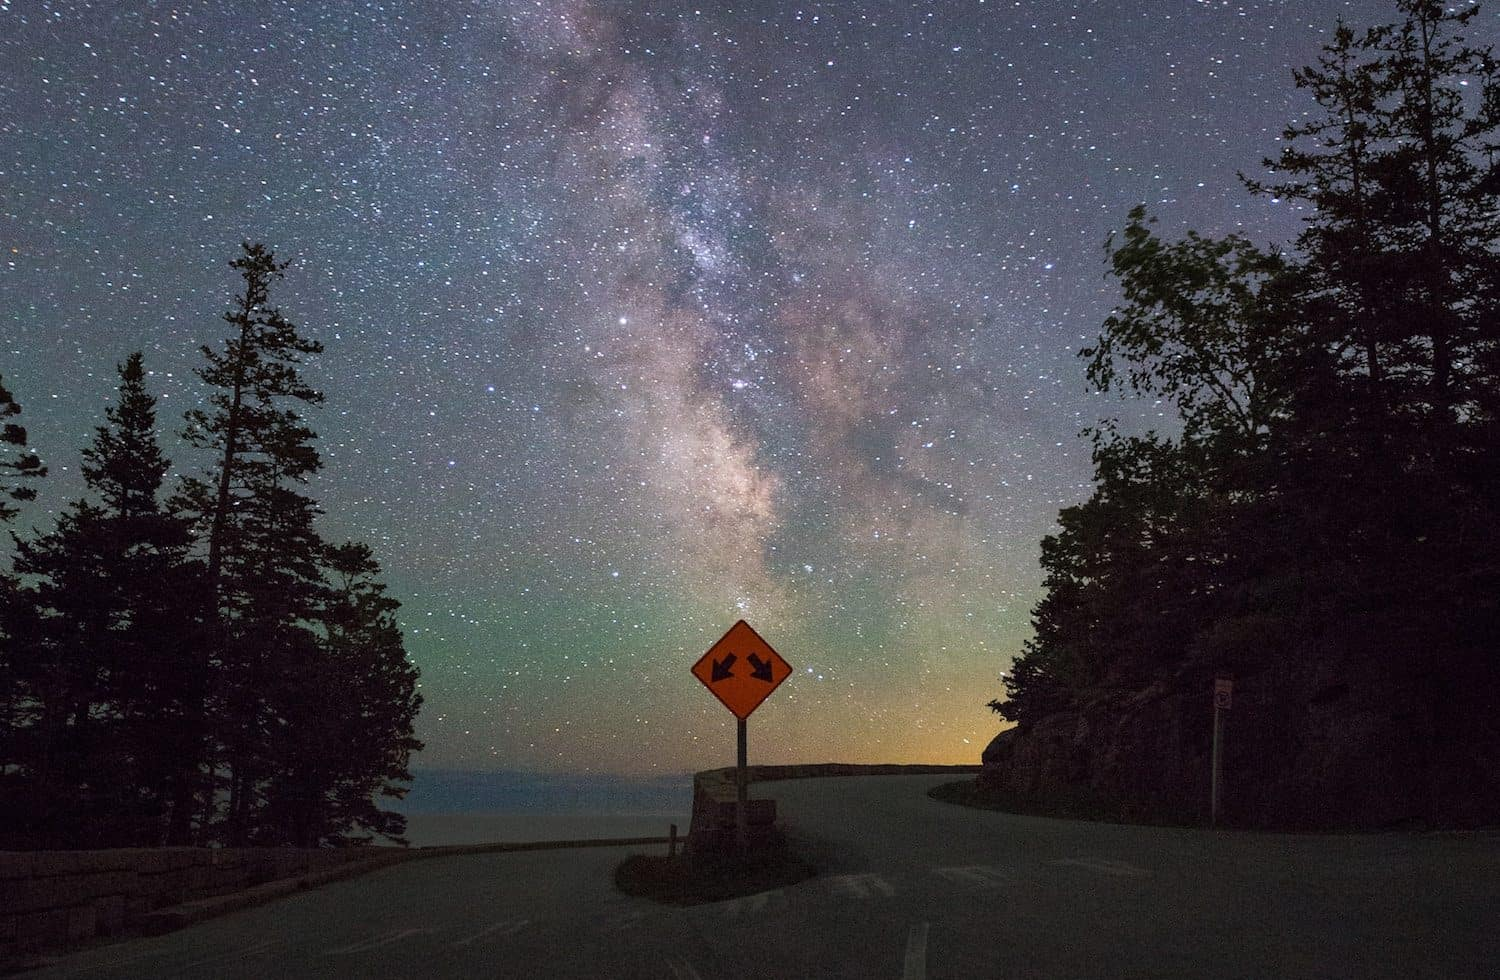 How to See the Northern Lights - Faint Aurora over Acadia National Park